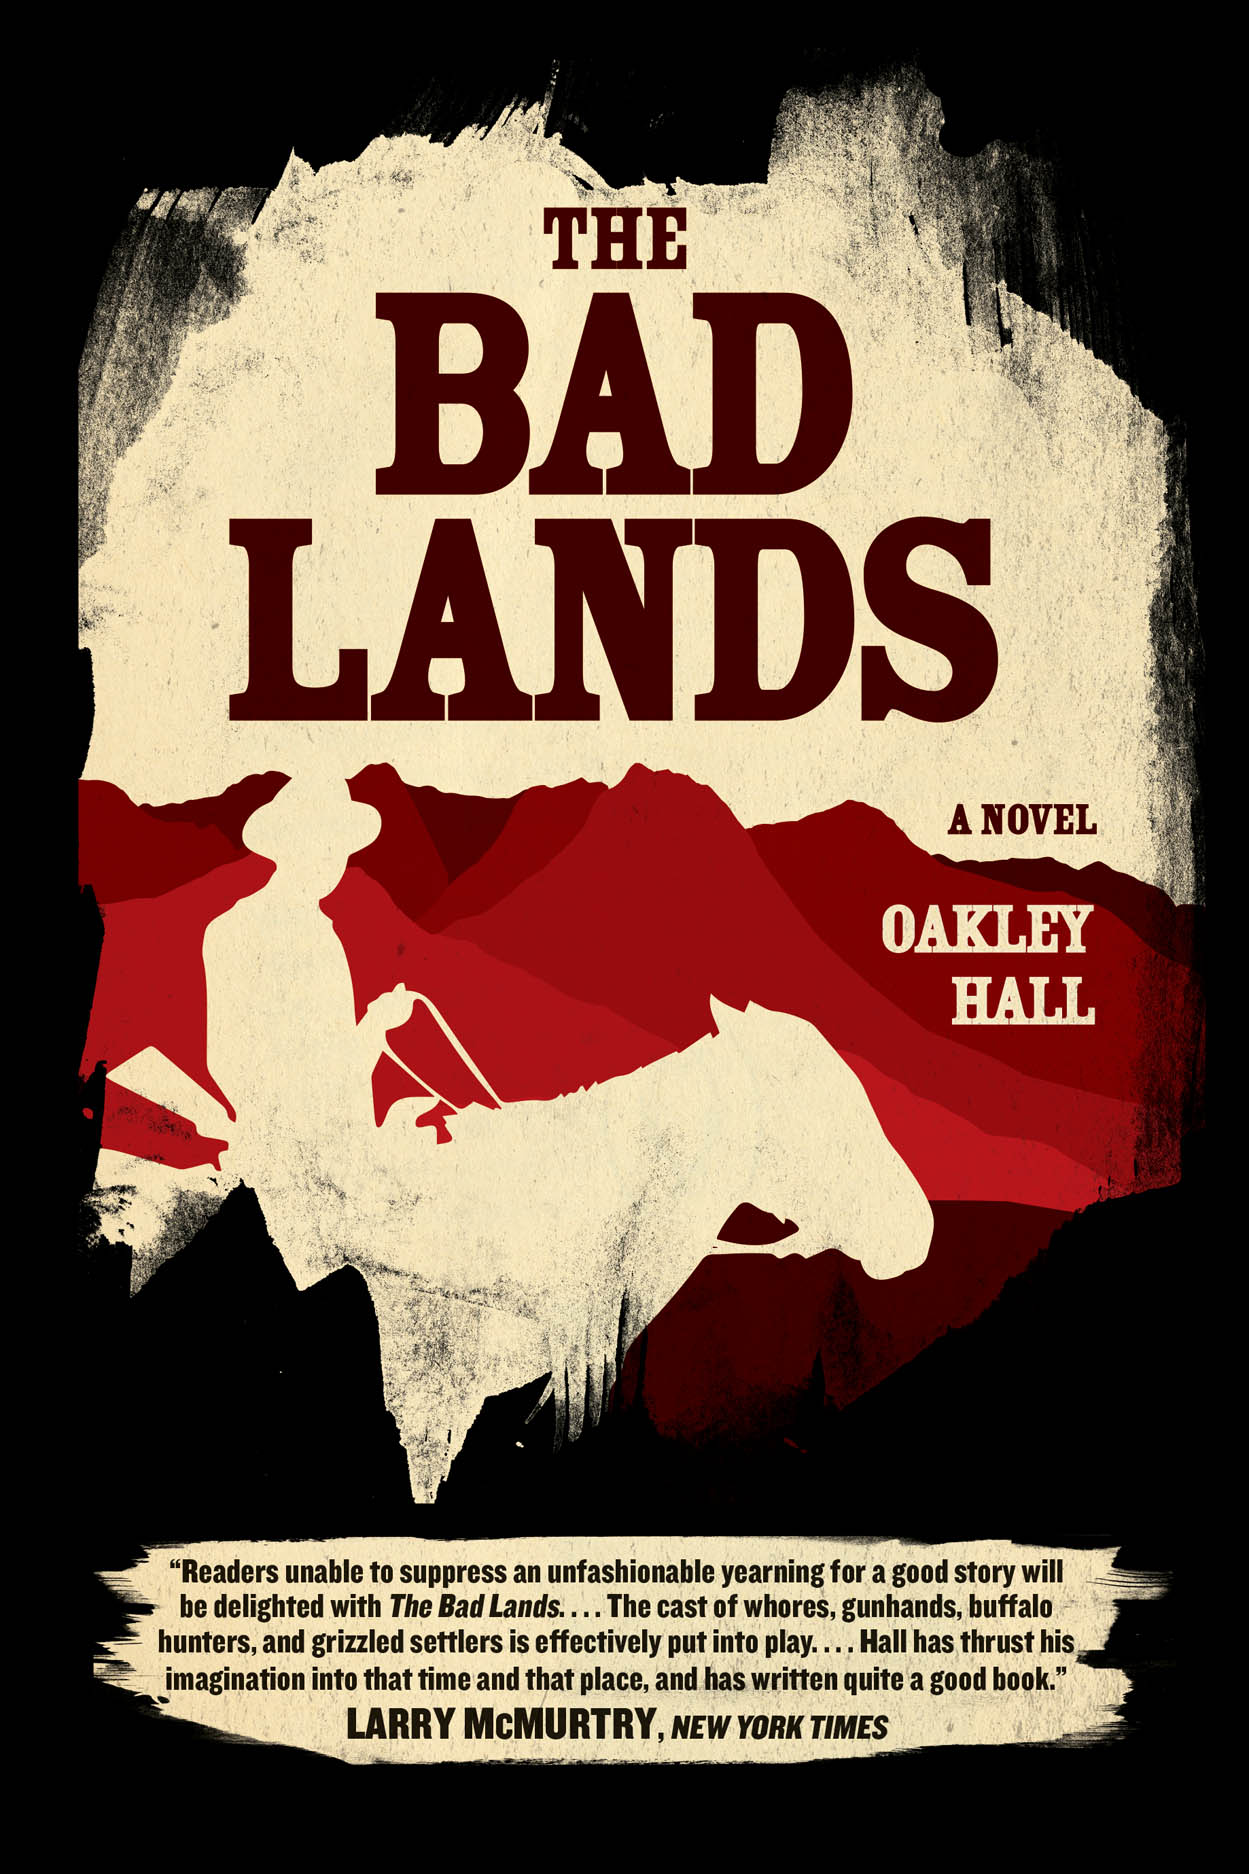 The Bad Lands: A Novel